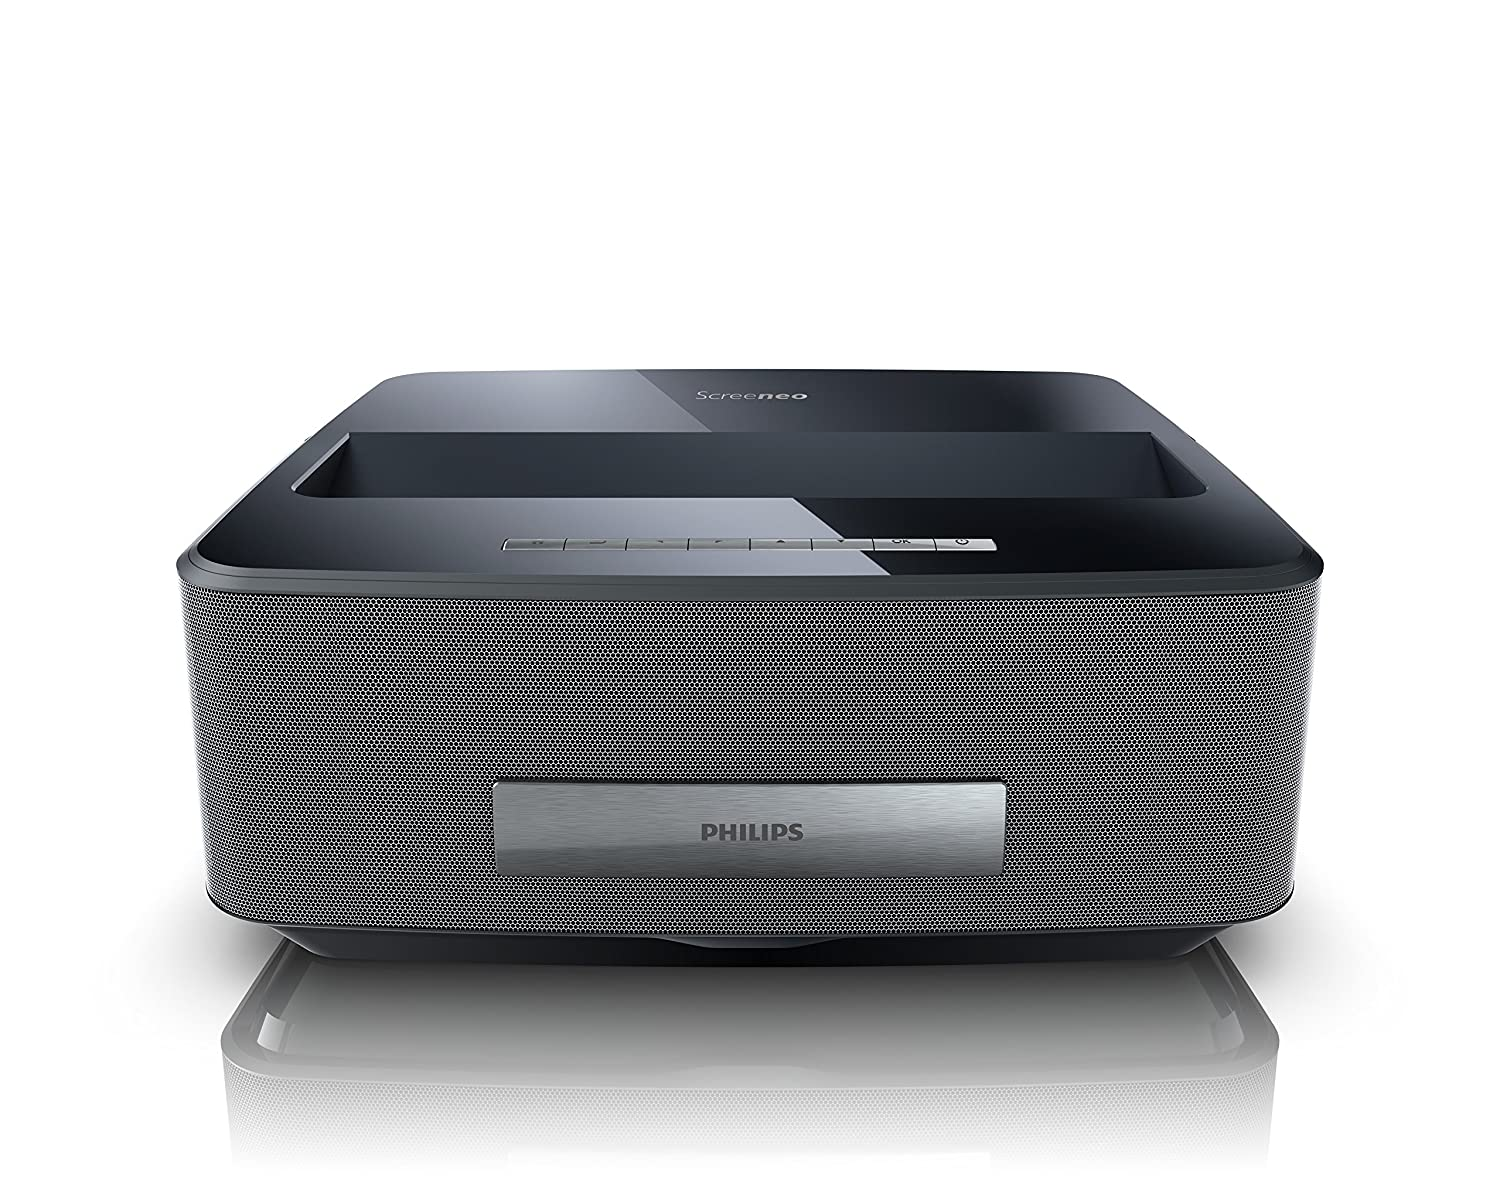 Philips HDP1590 Screeneo, Smart Projector, HDMI, Ultra Short Throw, 120 Inches Display, WiFi, 2.1 Sound System